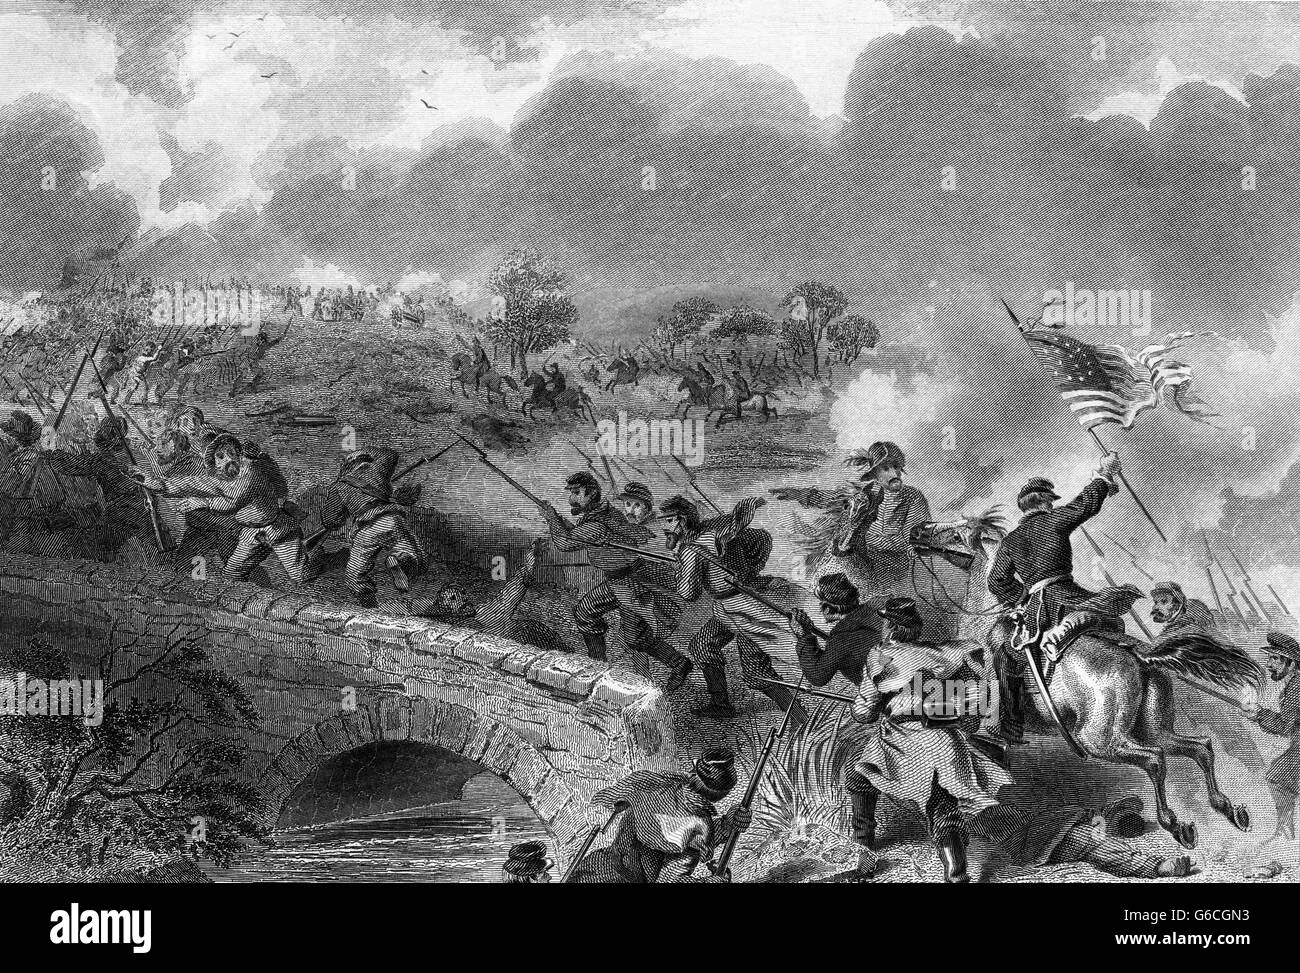 1860s BURNSIDE'S TAKING OF THE BRIDGE AT BATTLE OF ANTIETAM CREEK SHARPSBURG MARYLAND SEPTEMBER 1862 - Stock Image